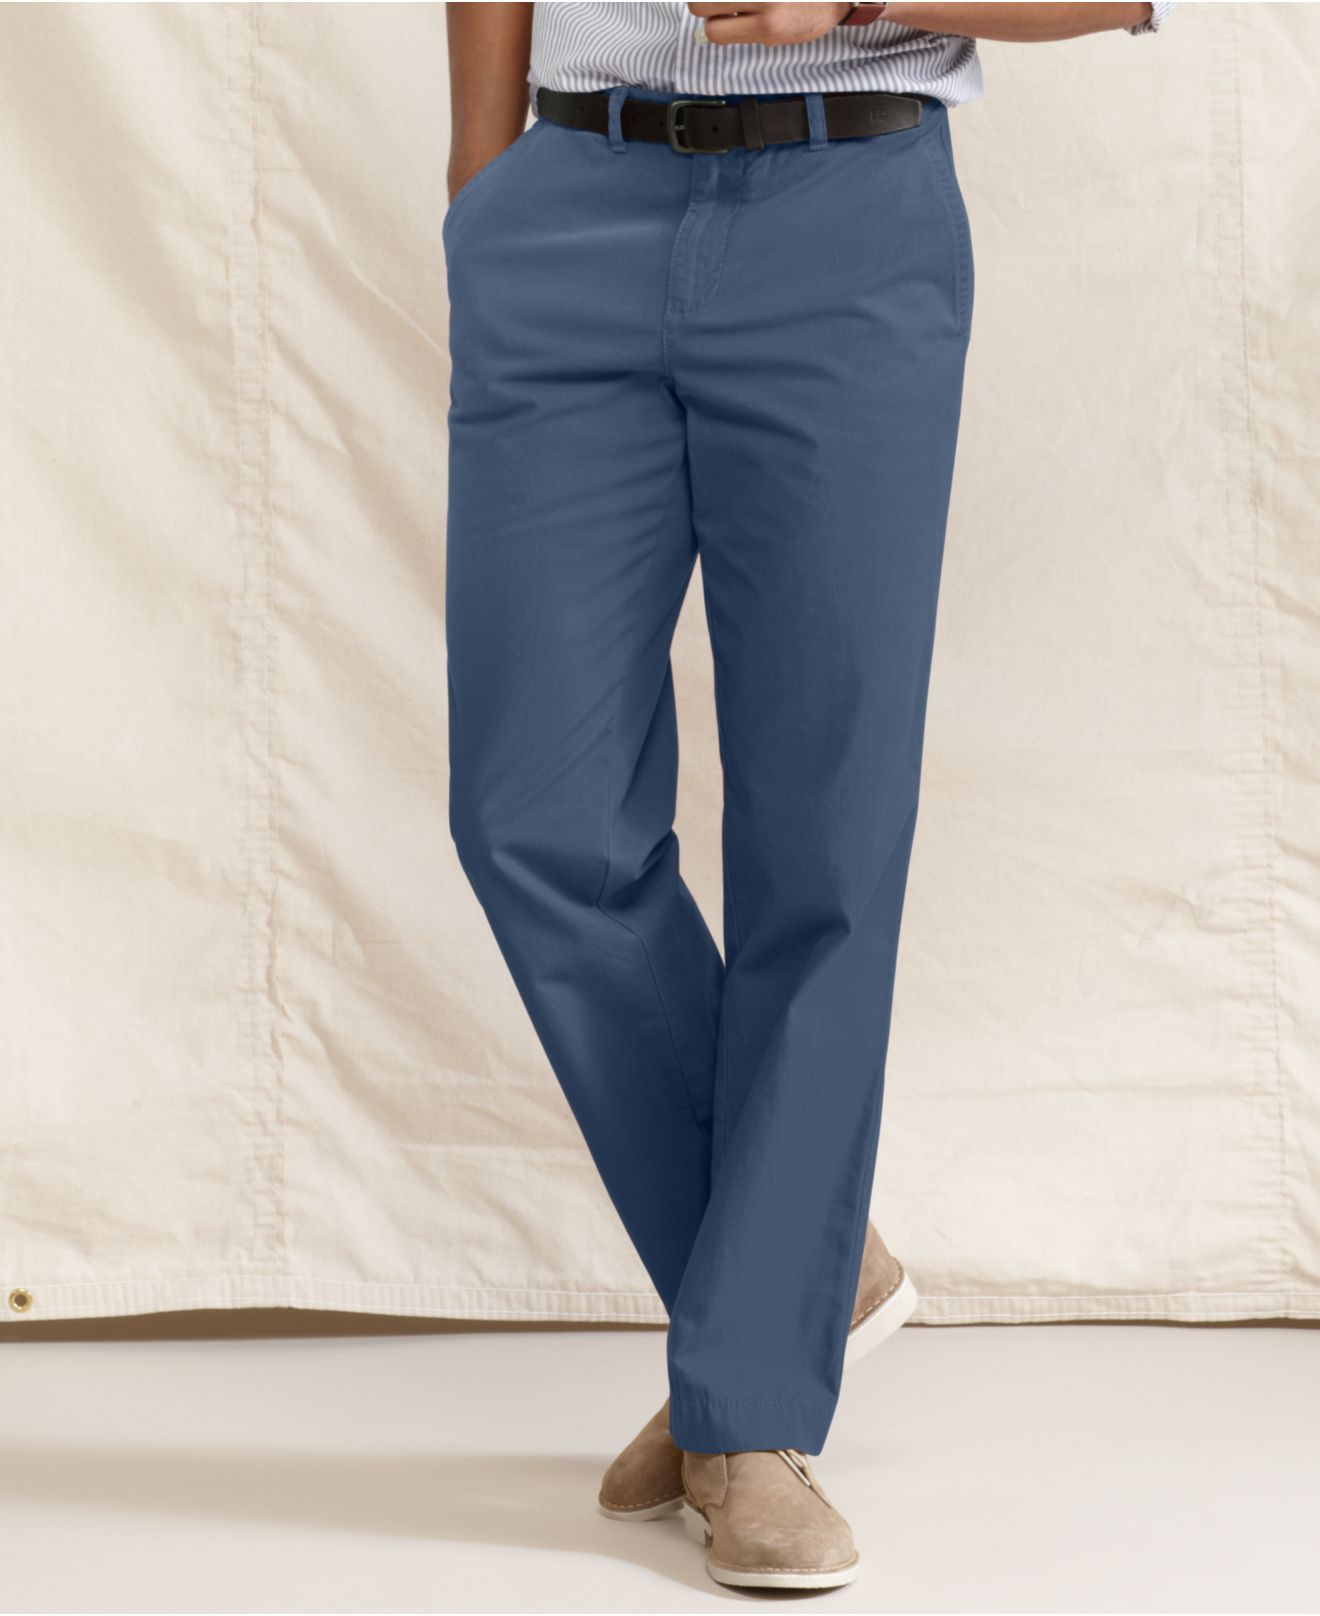 tommy hilfiger mens chinos